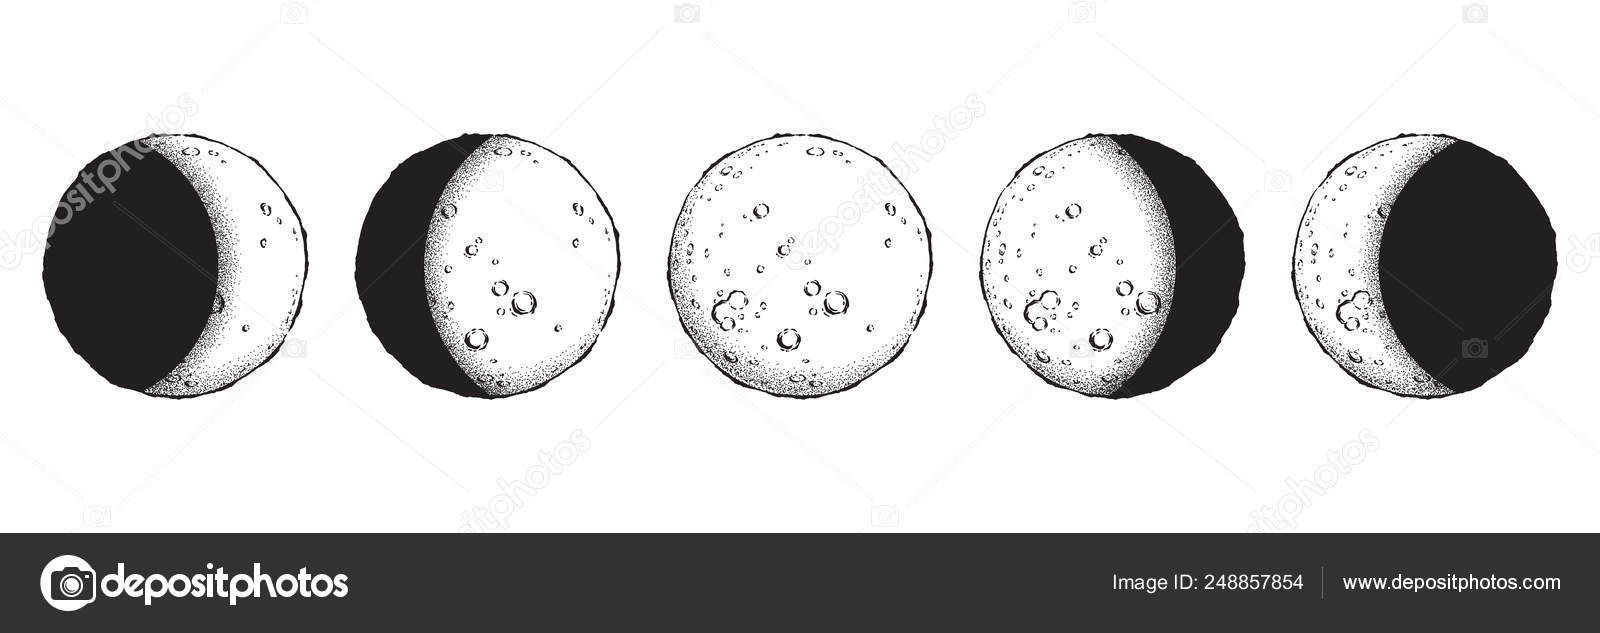 Antique Style Hand Drawn Line Art And Dot Work Moon Phases